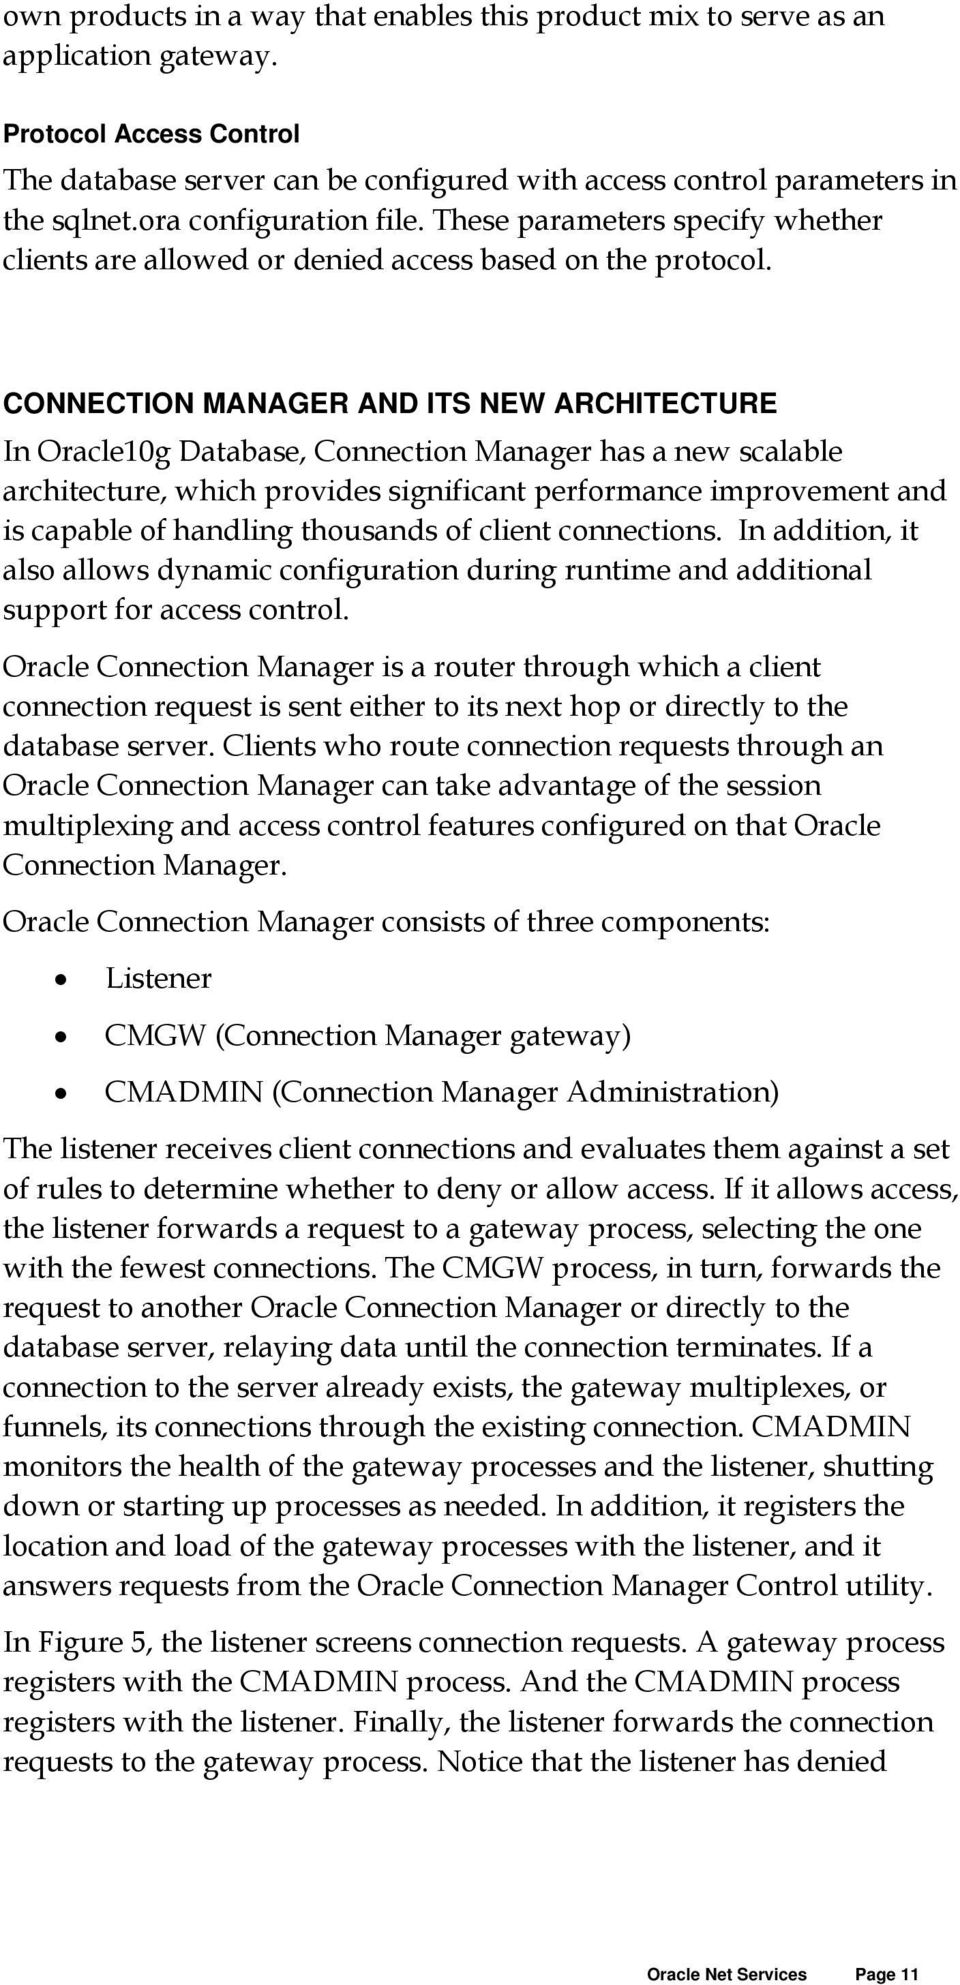 CONNECTION MANAGER AND ITS NEW ARCHITECTURE In Oracle10g Database, Connection Manager has a new scalable architecture, which provides significant performance improvement and is capable of handling